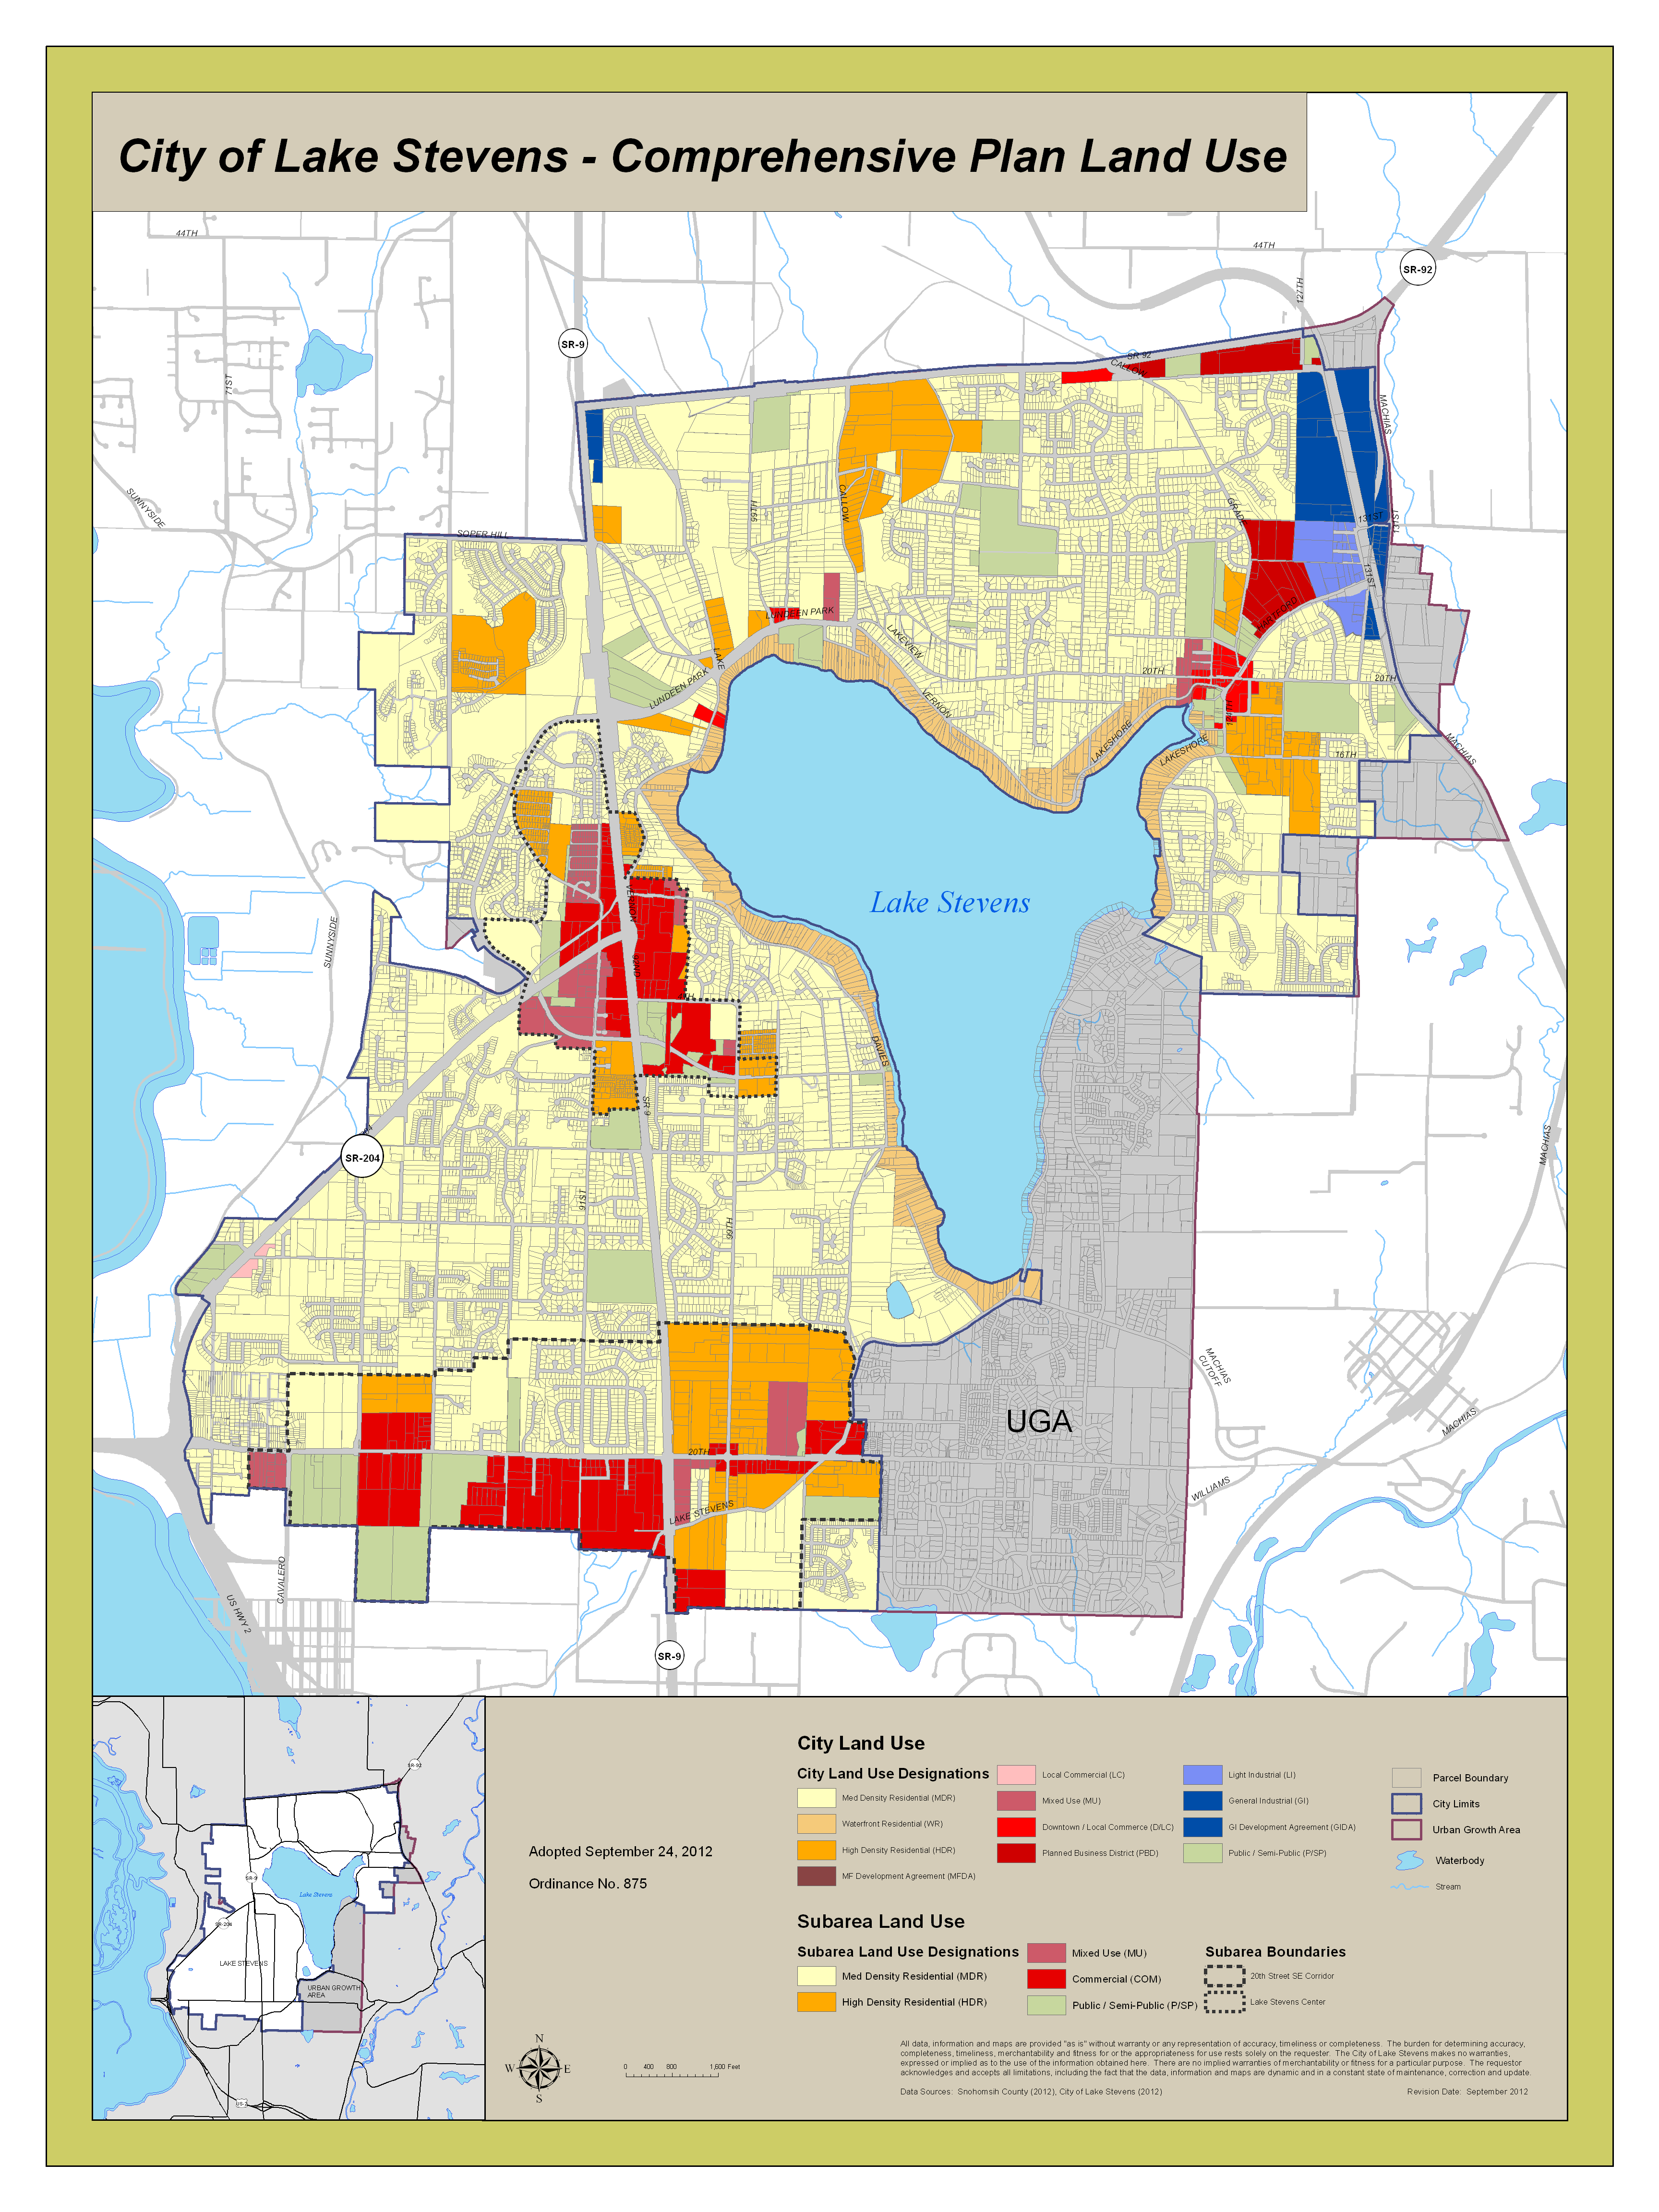 2012 Land Use 12-10-12_reduced.png